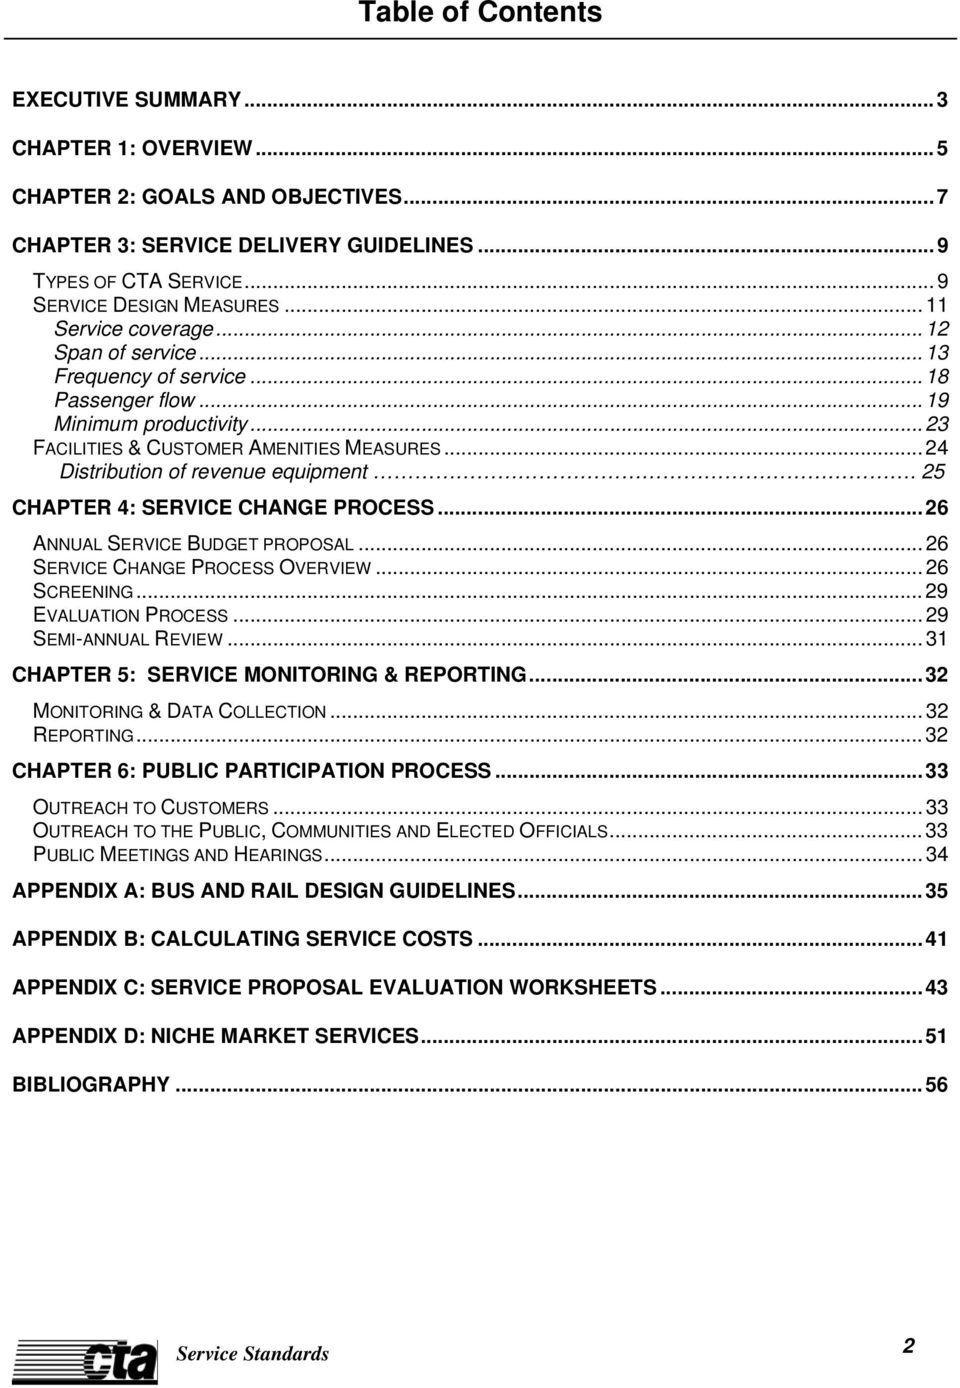 .. 24 Distribution of revenue equipment. 25 CHAPTER 4: SERVICE CHANGE PROCESS... 26 ANNUAL SERVICE BUDGET PROPOSAL... 26 SERVICE CHANGE PROCESS OVERVIEW... 26 SCREENING... 29 EVALUATION PROCESS.